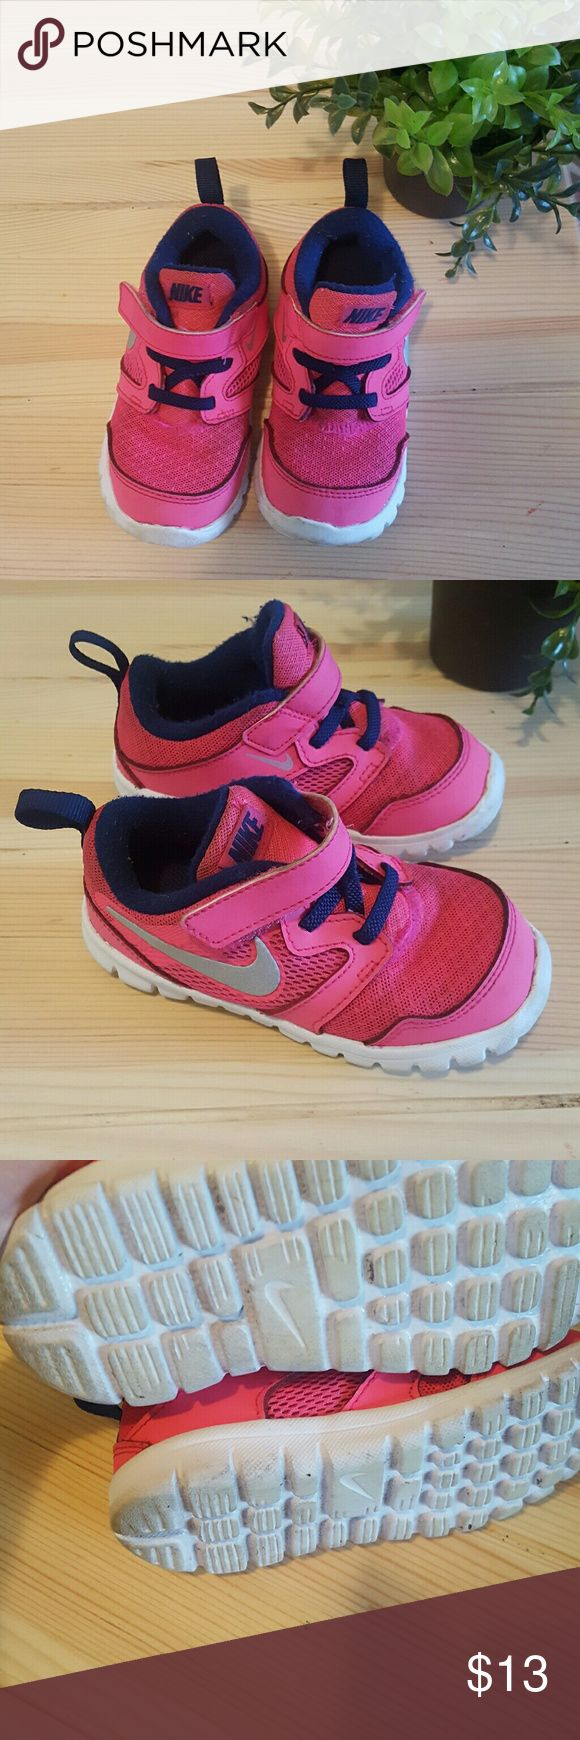 Pink Nikes💝 Used / Good condition. 8 Toddler Nike Shoes Sneakers